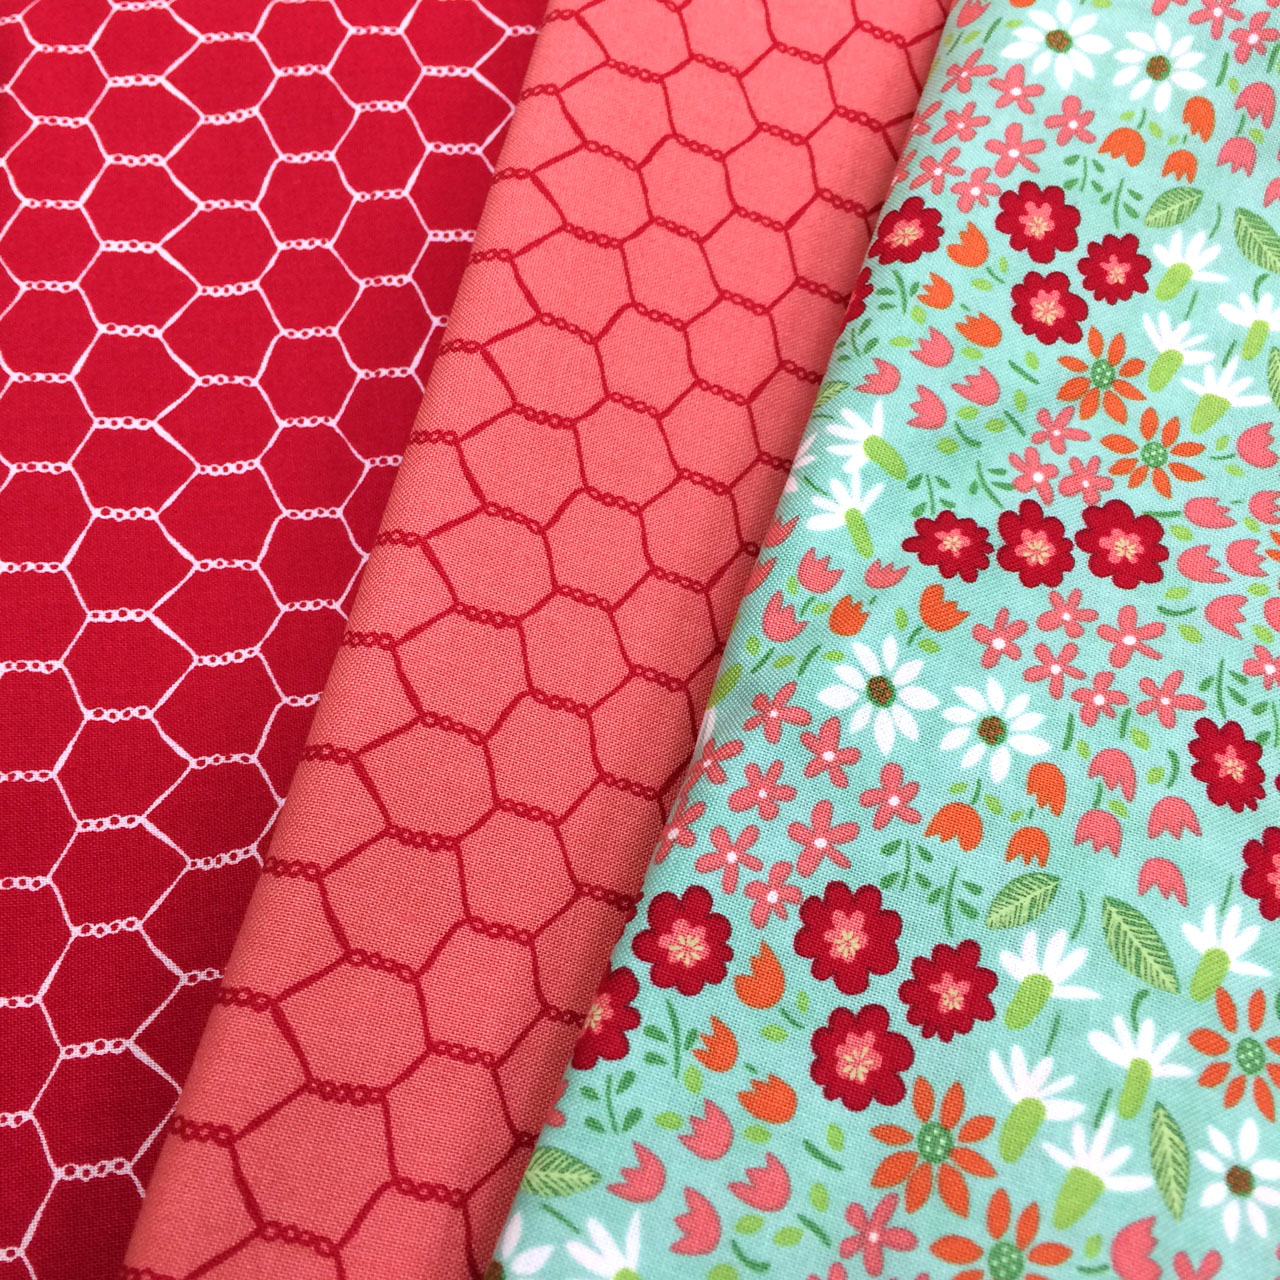 Quilted Blooms: Modern Plus Sign Quilts Blog Hop + Day 6